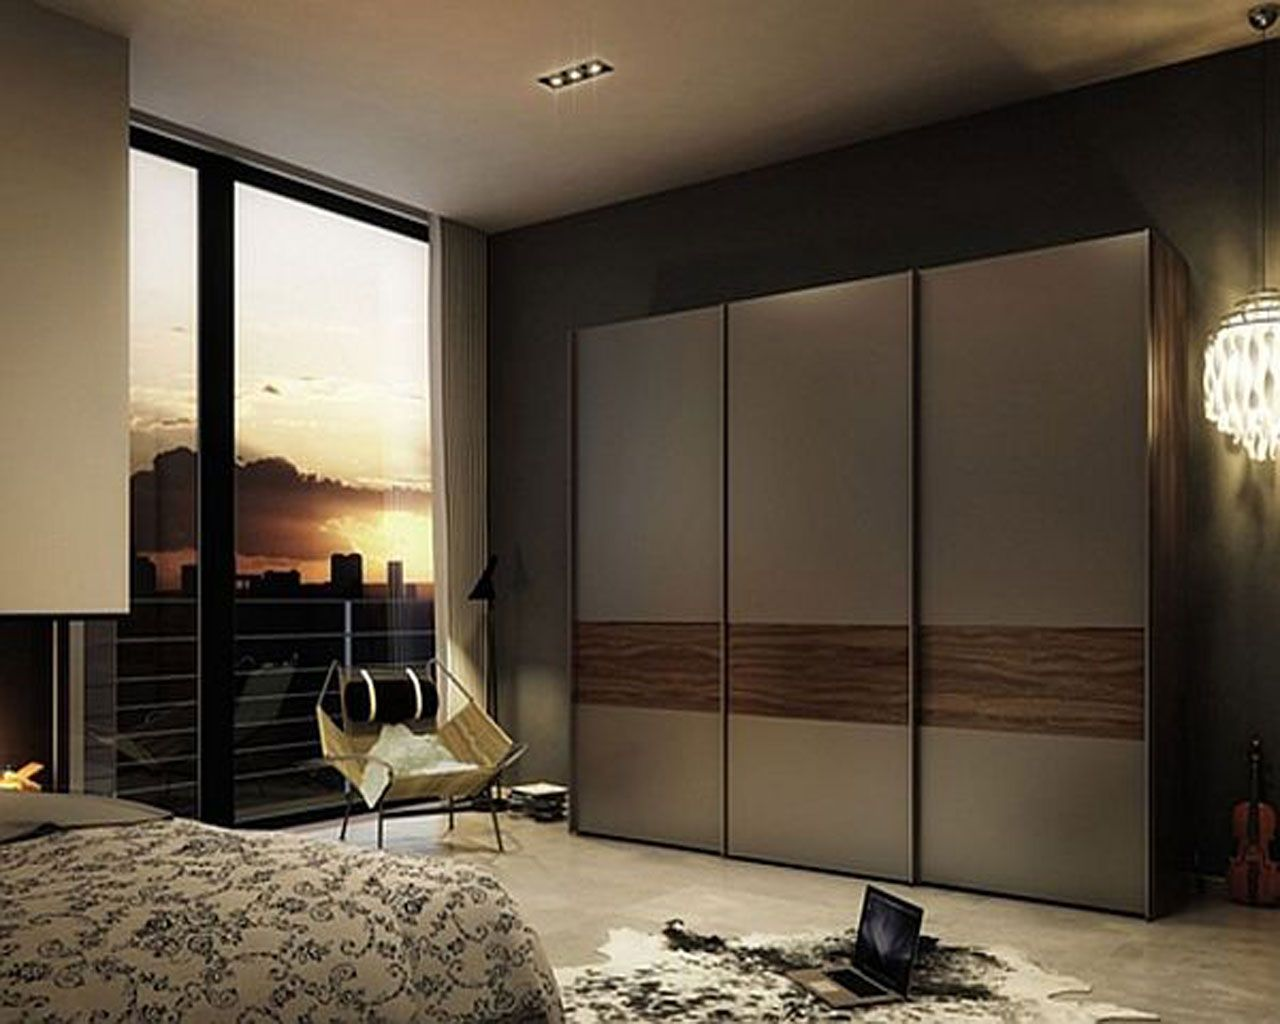 Home Decor Sliding Doors: Fitted Sliding Wardrobe Doors For Bedroom Furniture